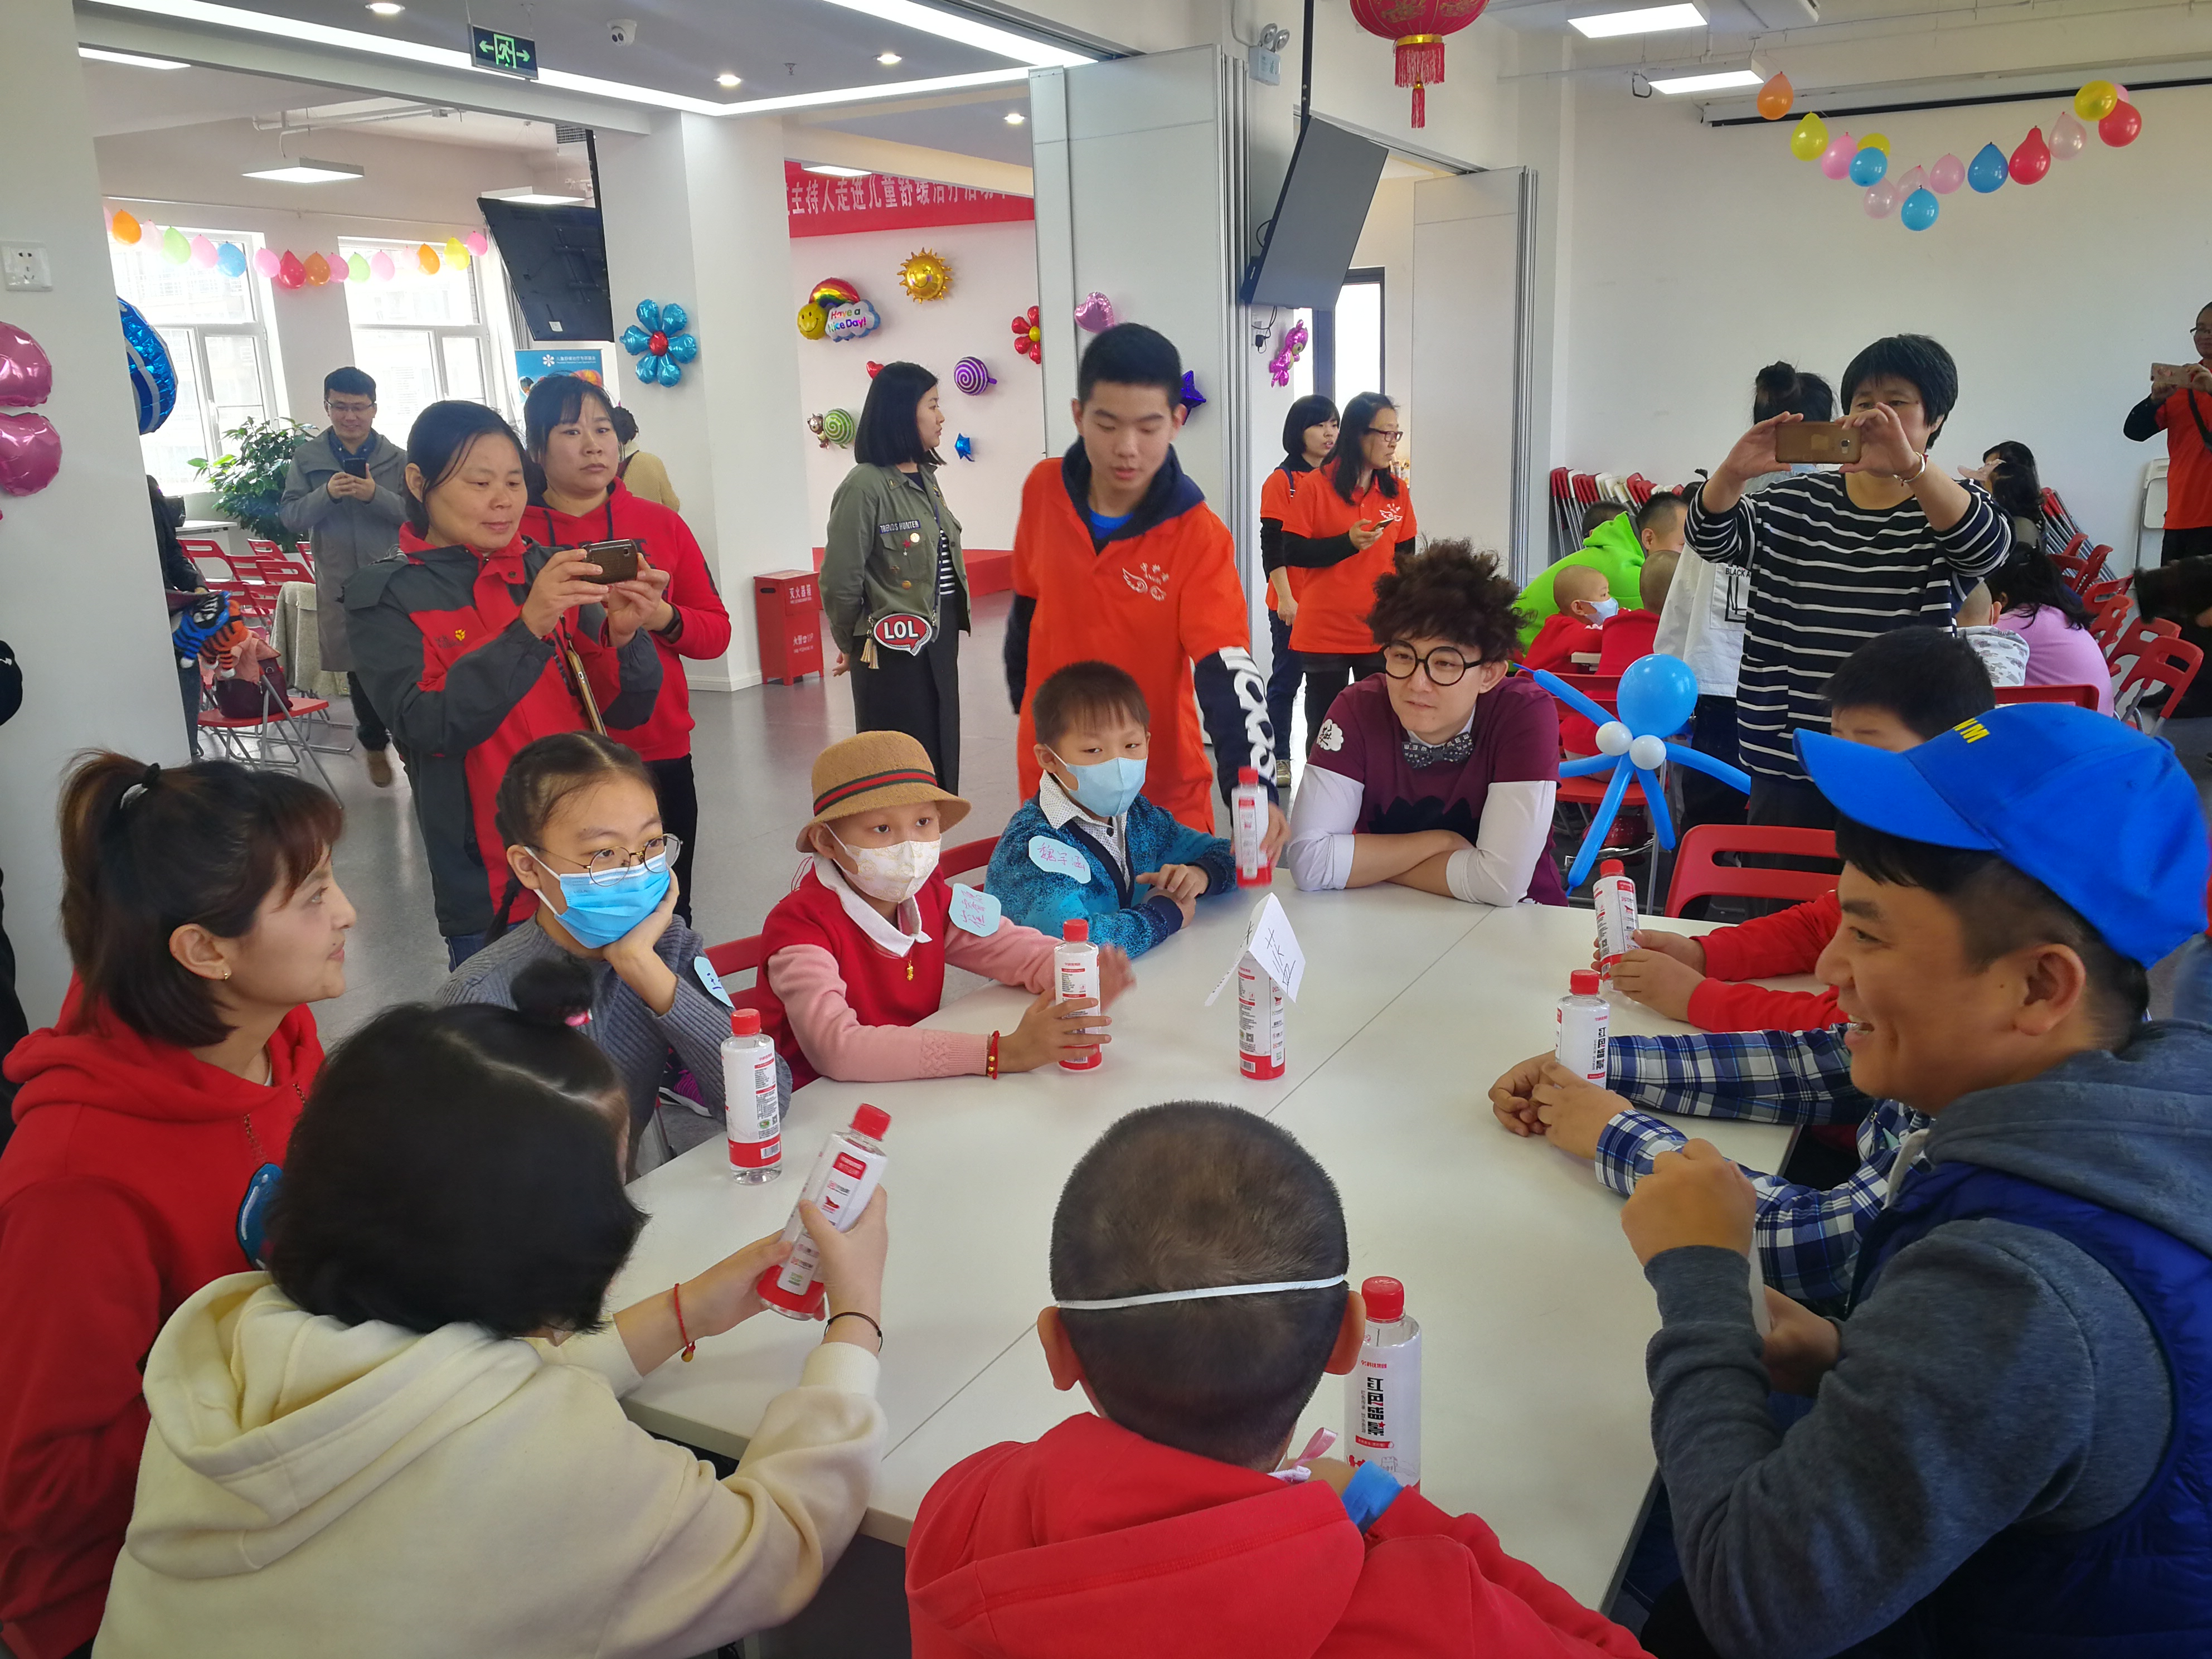 Palliative care helps relieve pain of children with cancer in Beijing